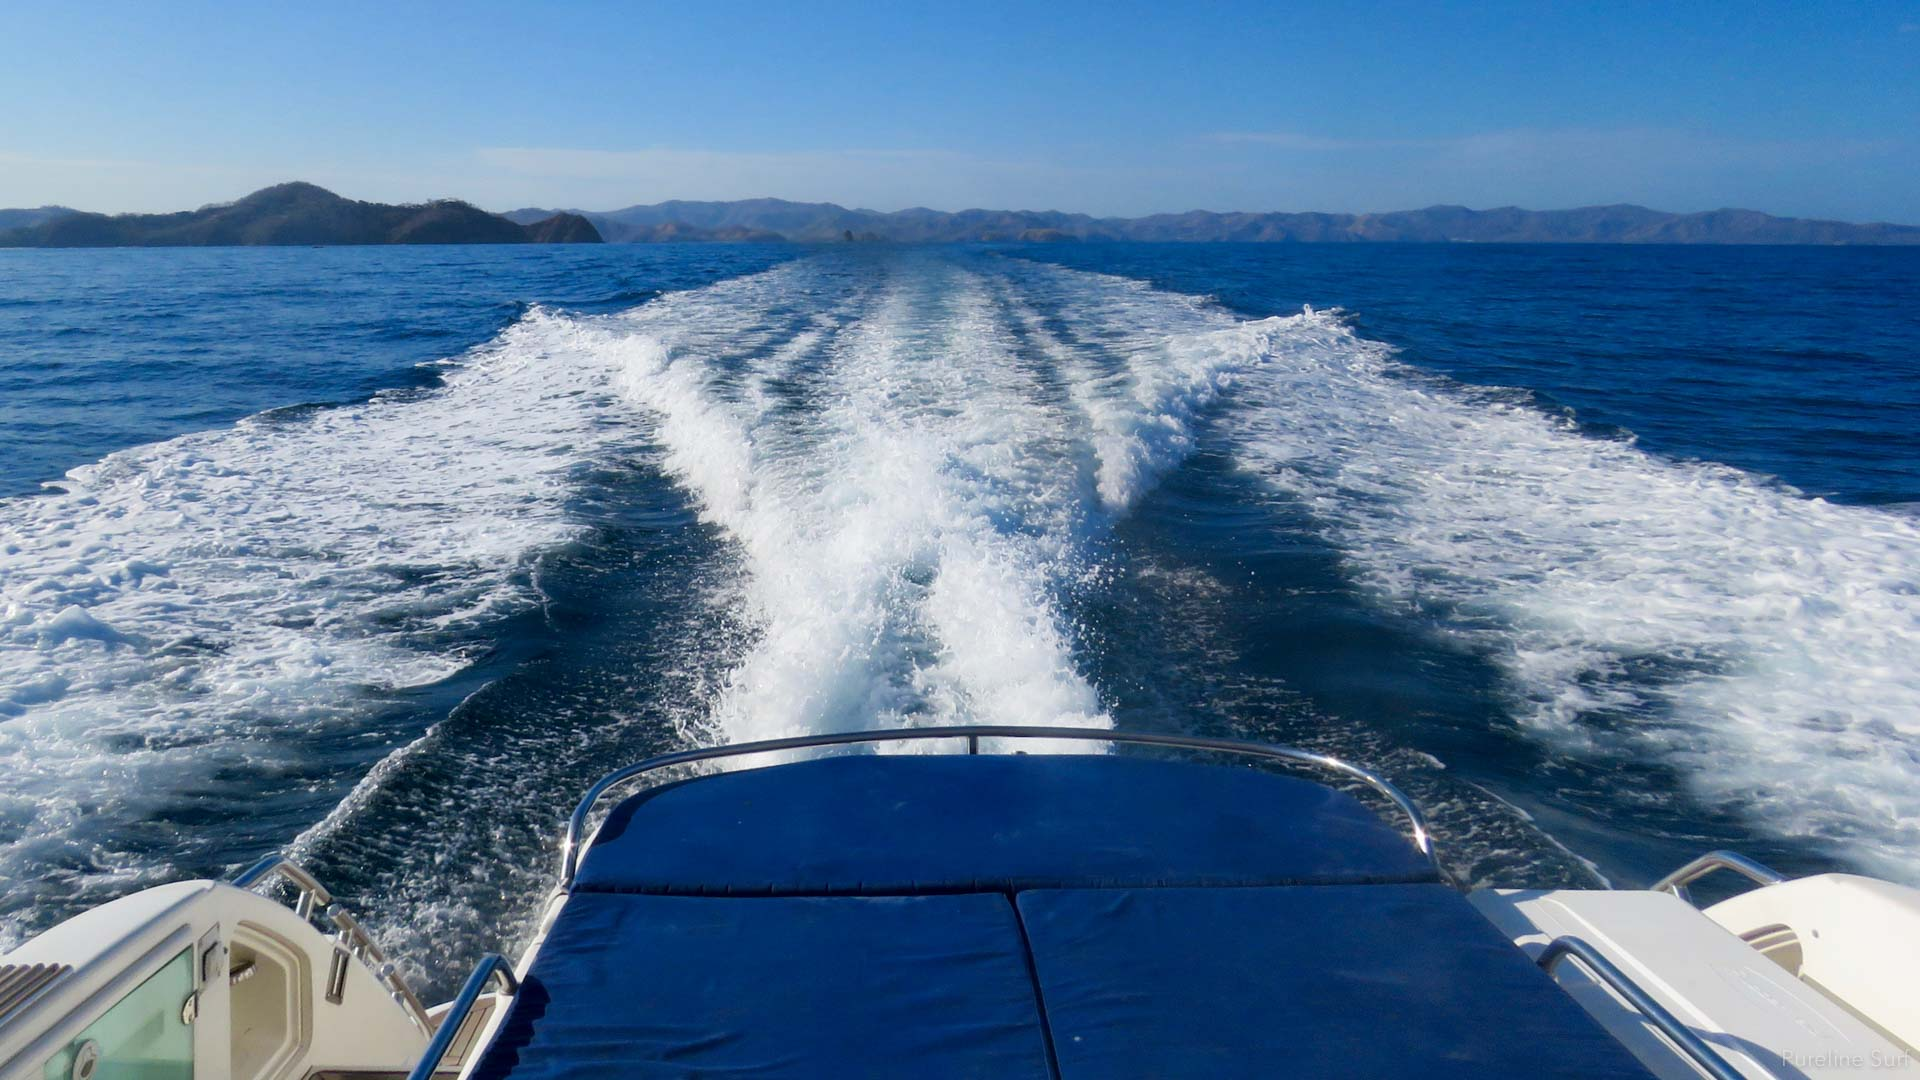 View from the stern of a luxury boat used by Pureline Surf on our Costa Rican Surf Trips.